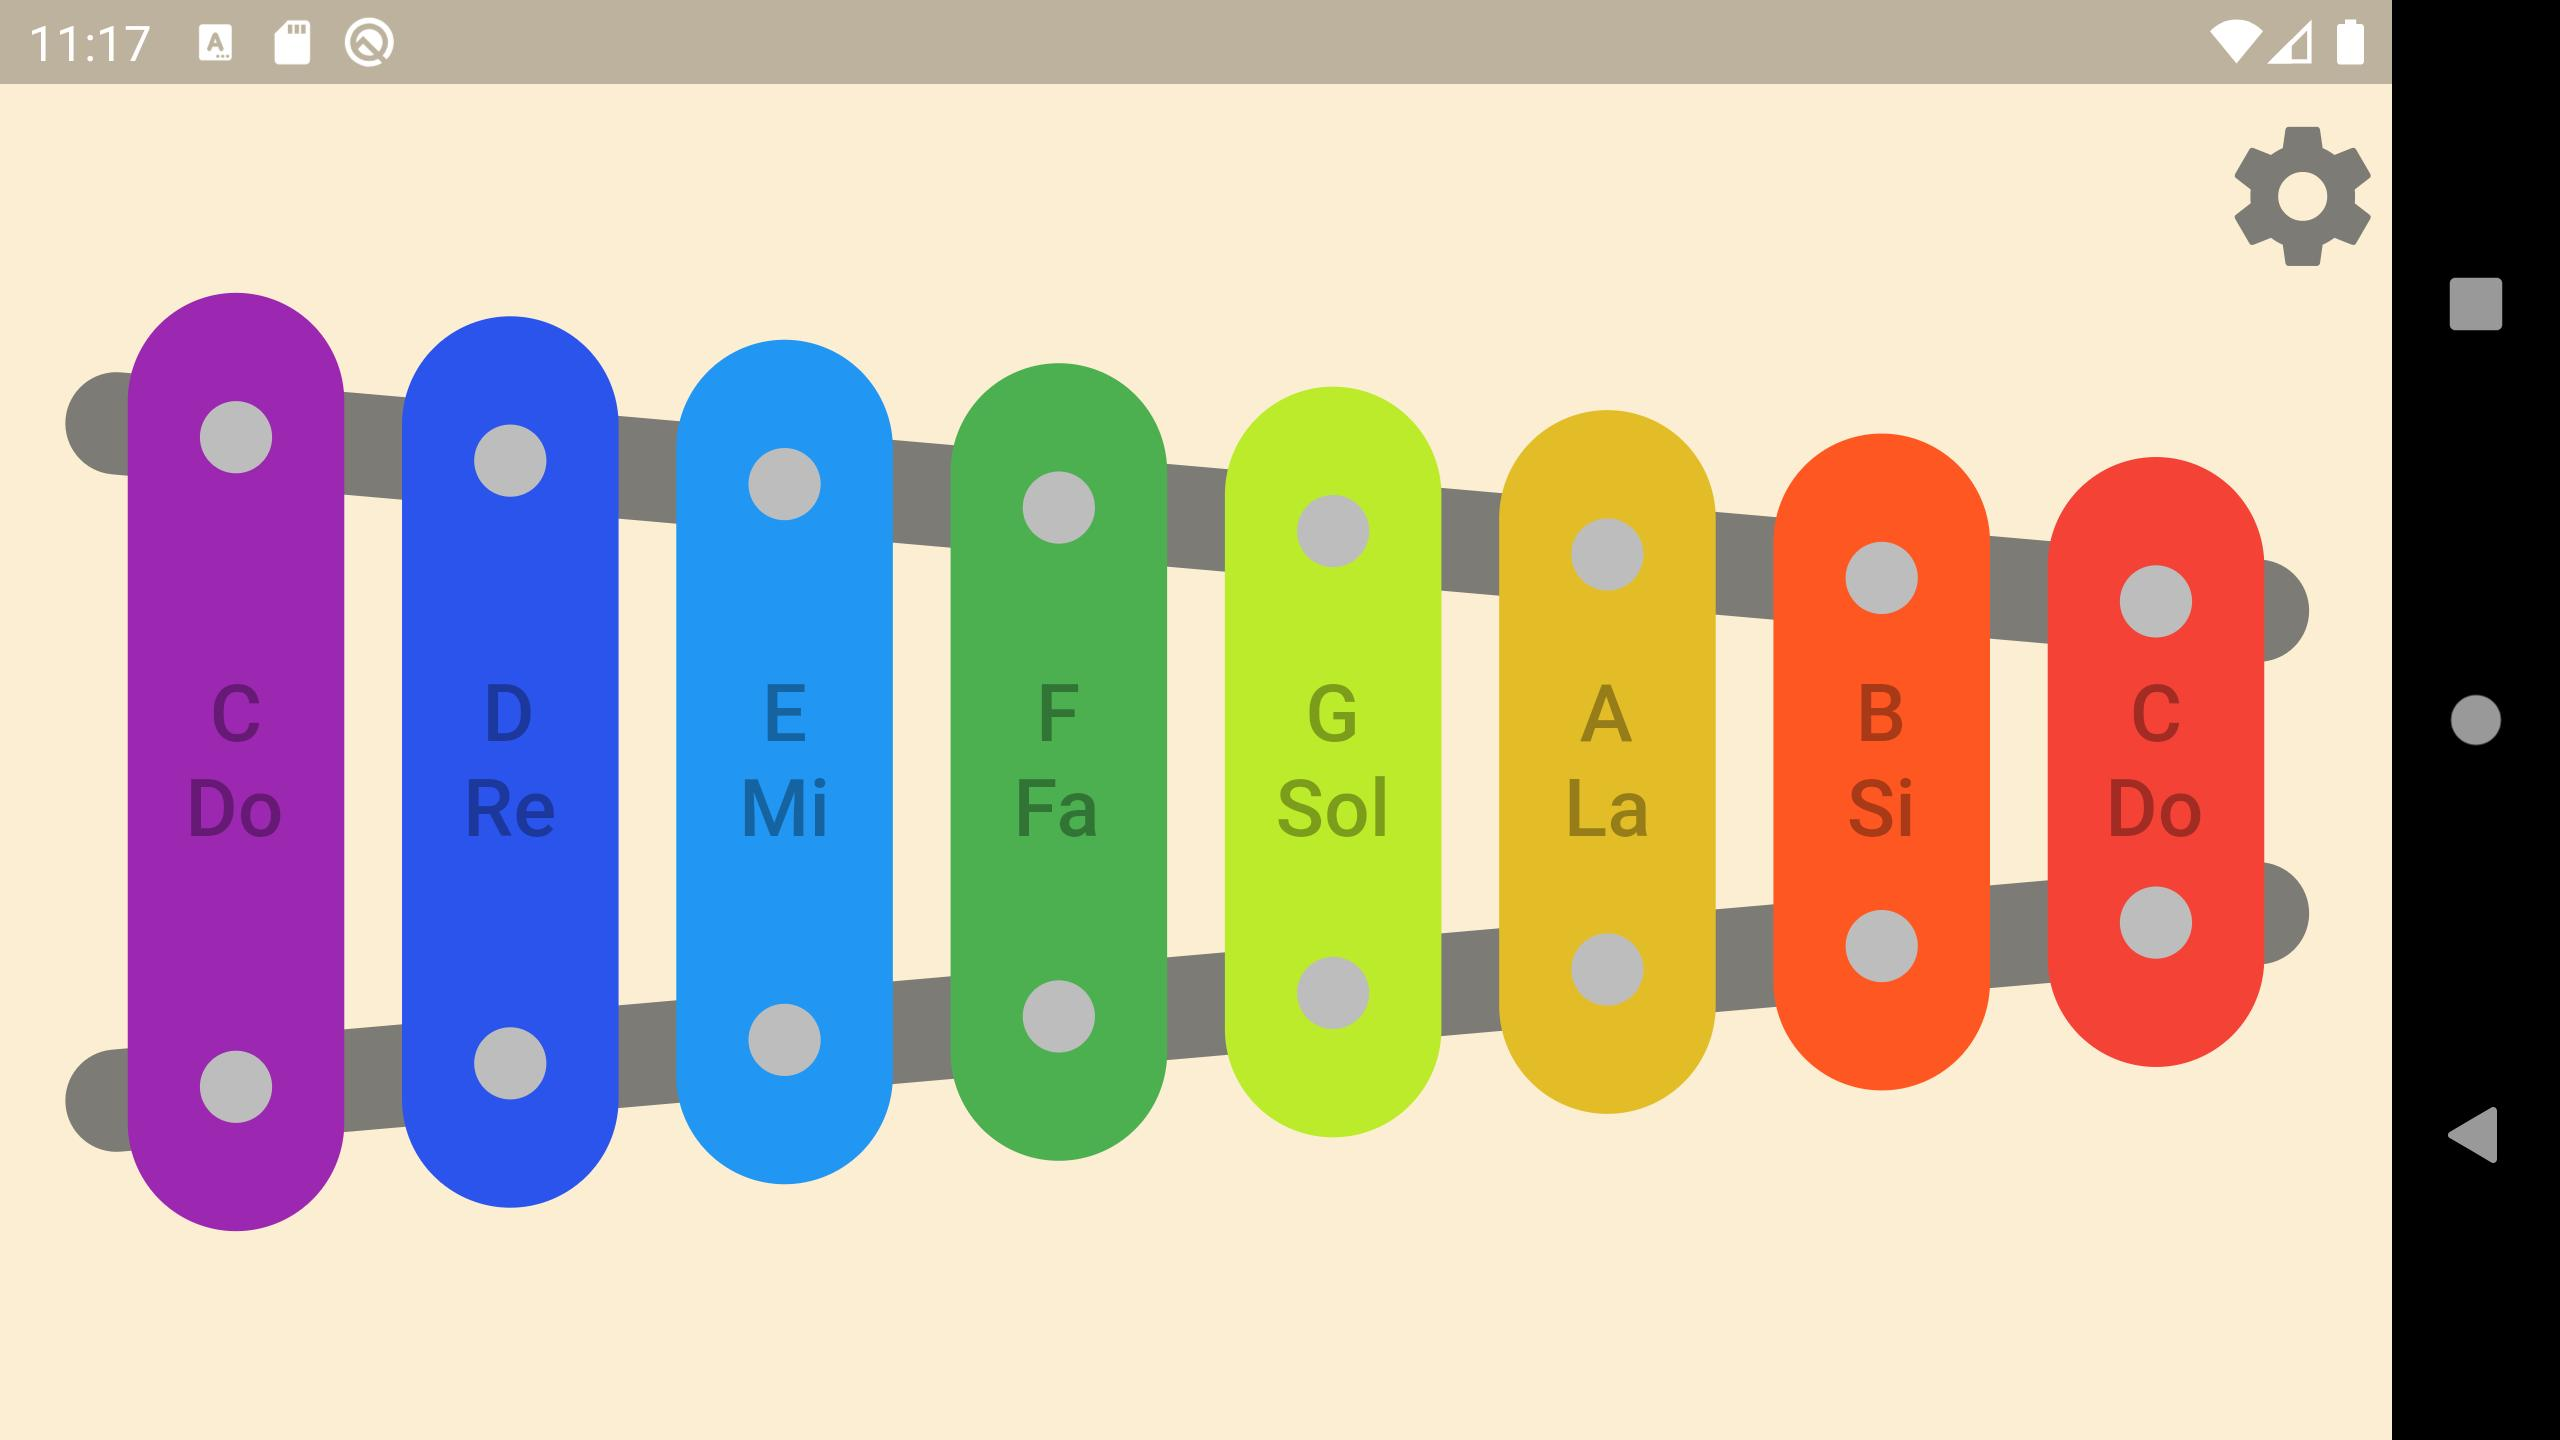 Xylophone Funniest Way To Learn Notes For Android Apk Download